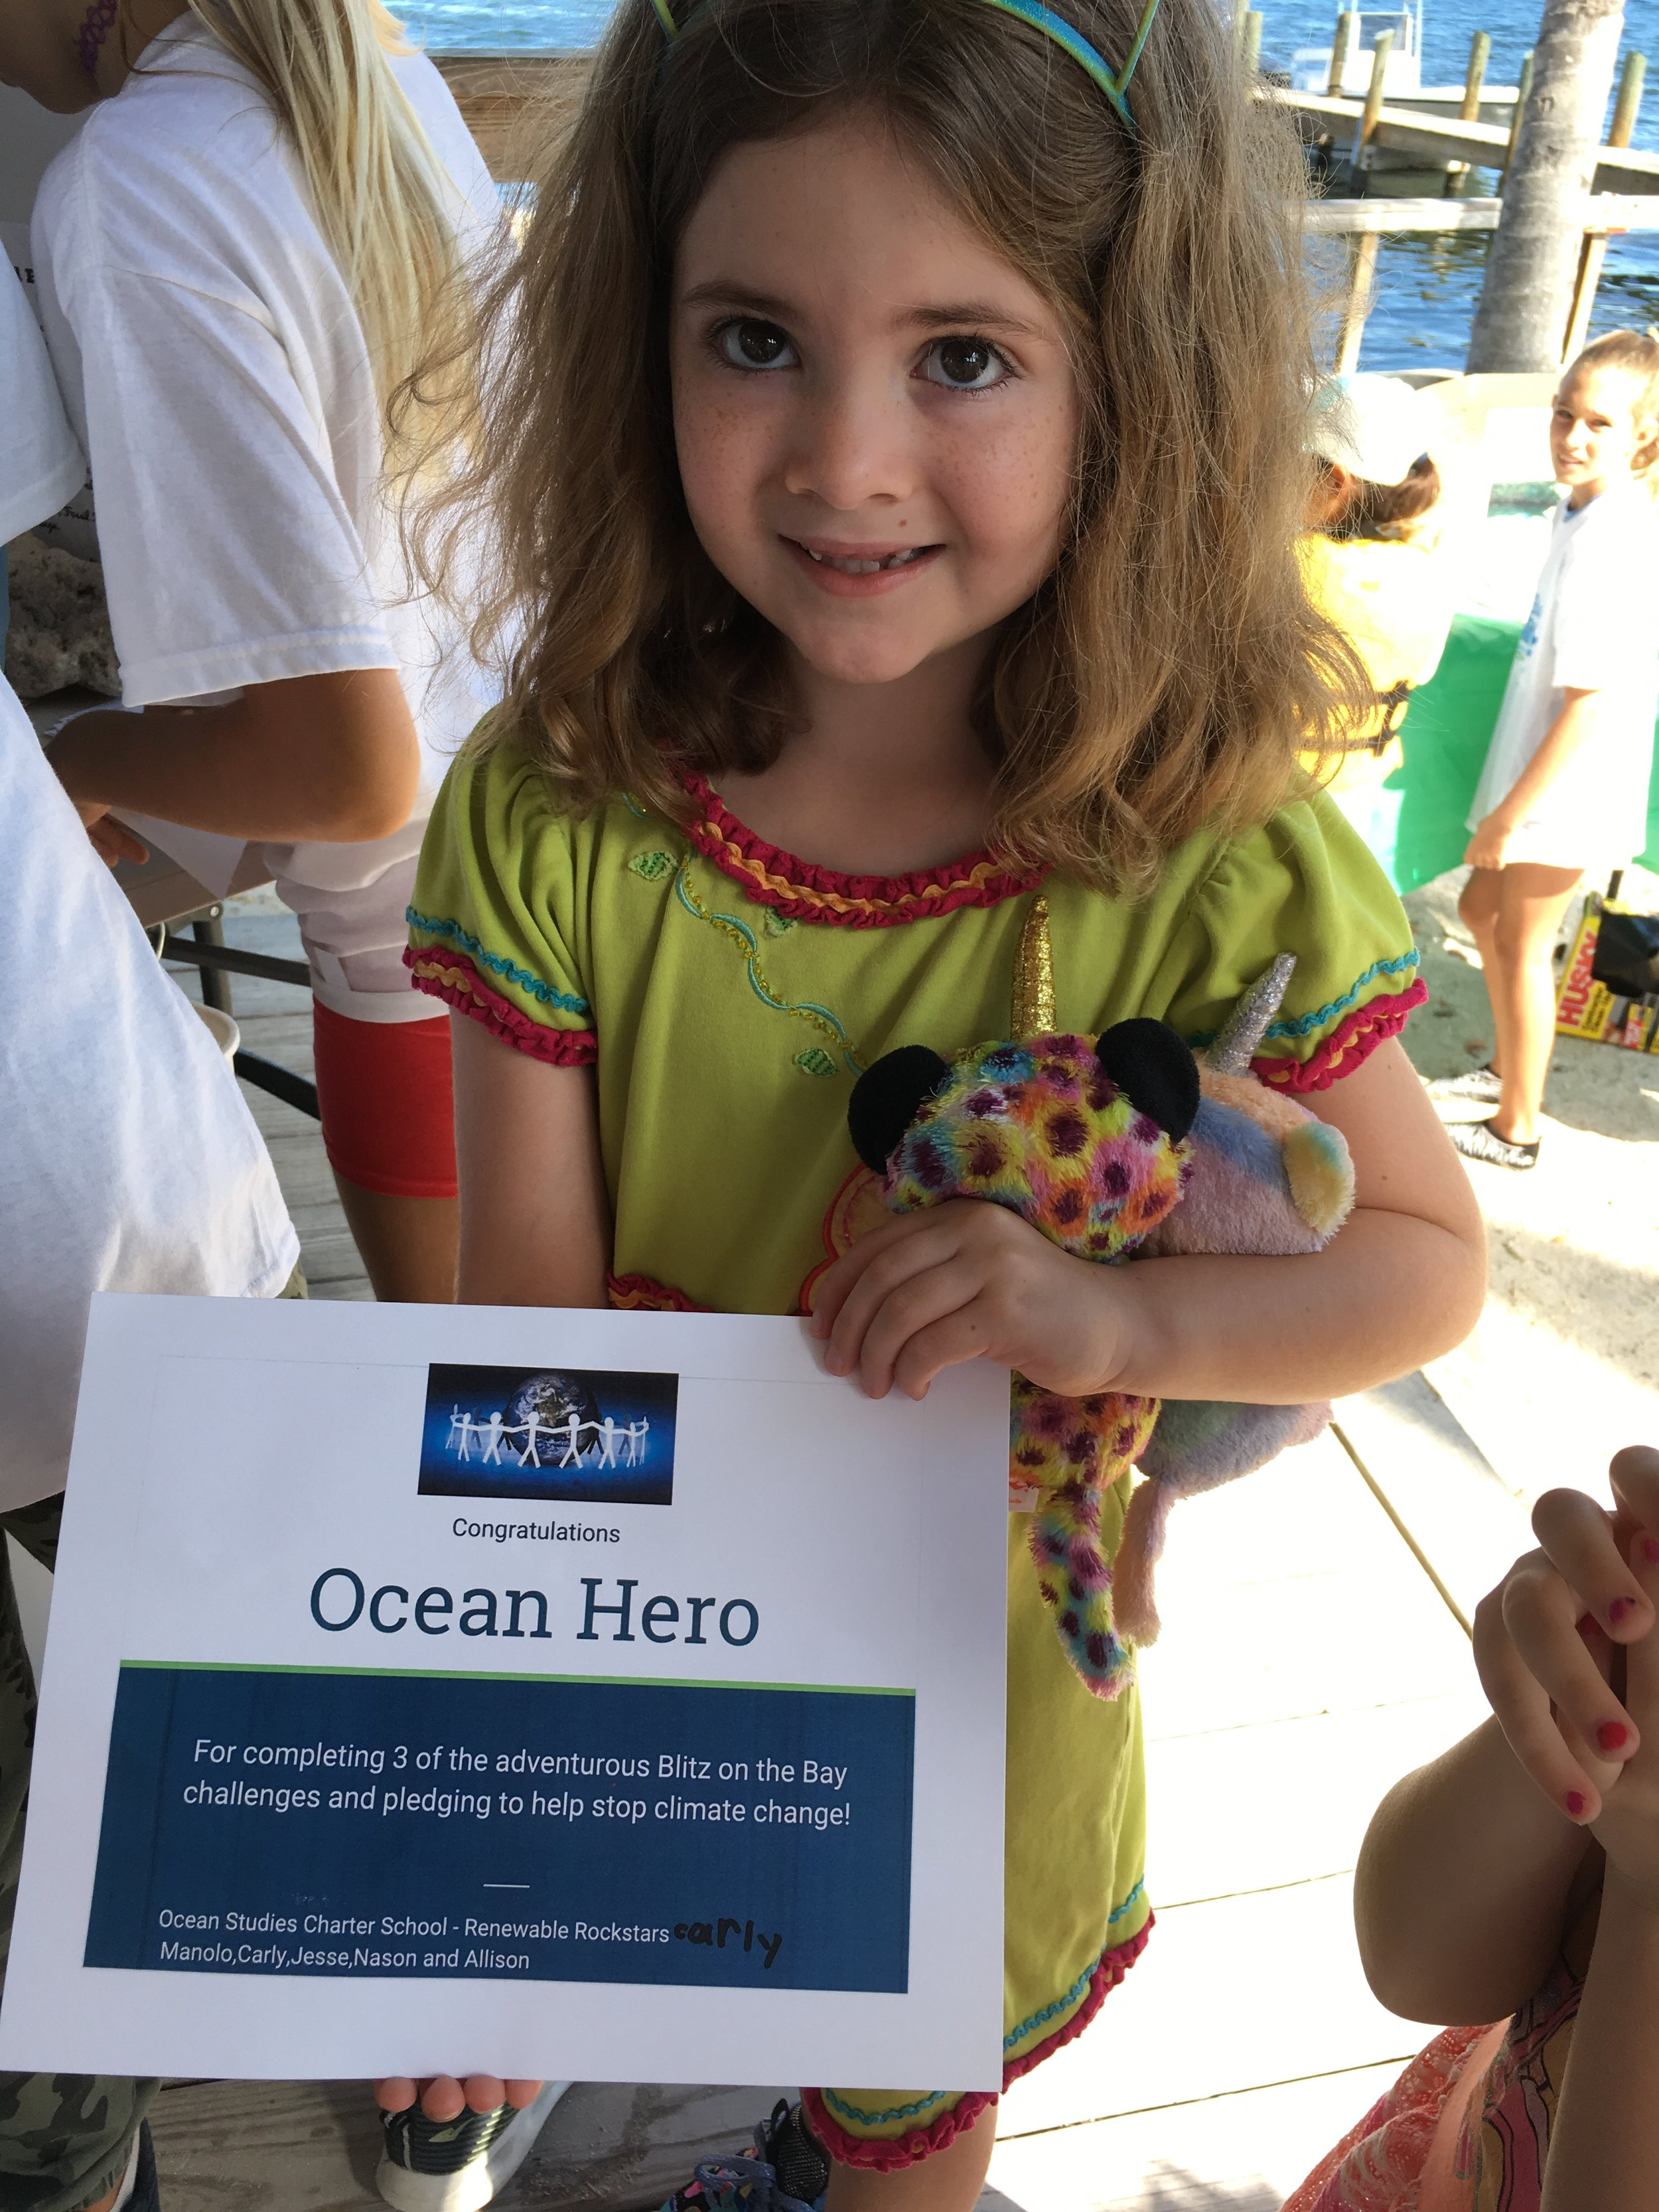 An Ocean Hero awards were given to Blitz goers who could proved they learned something about the Bay!